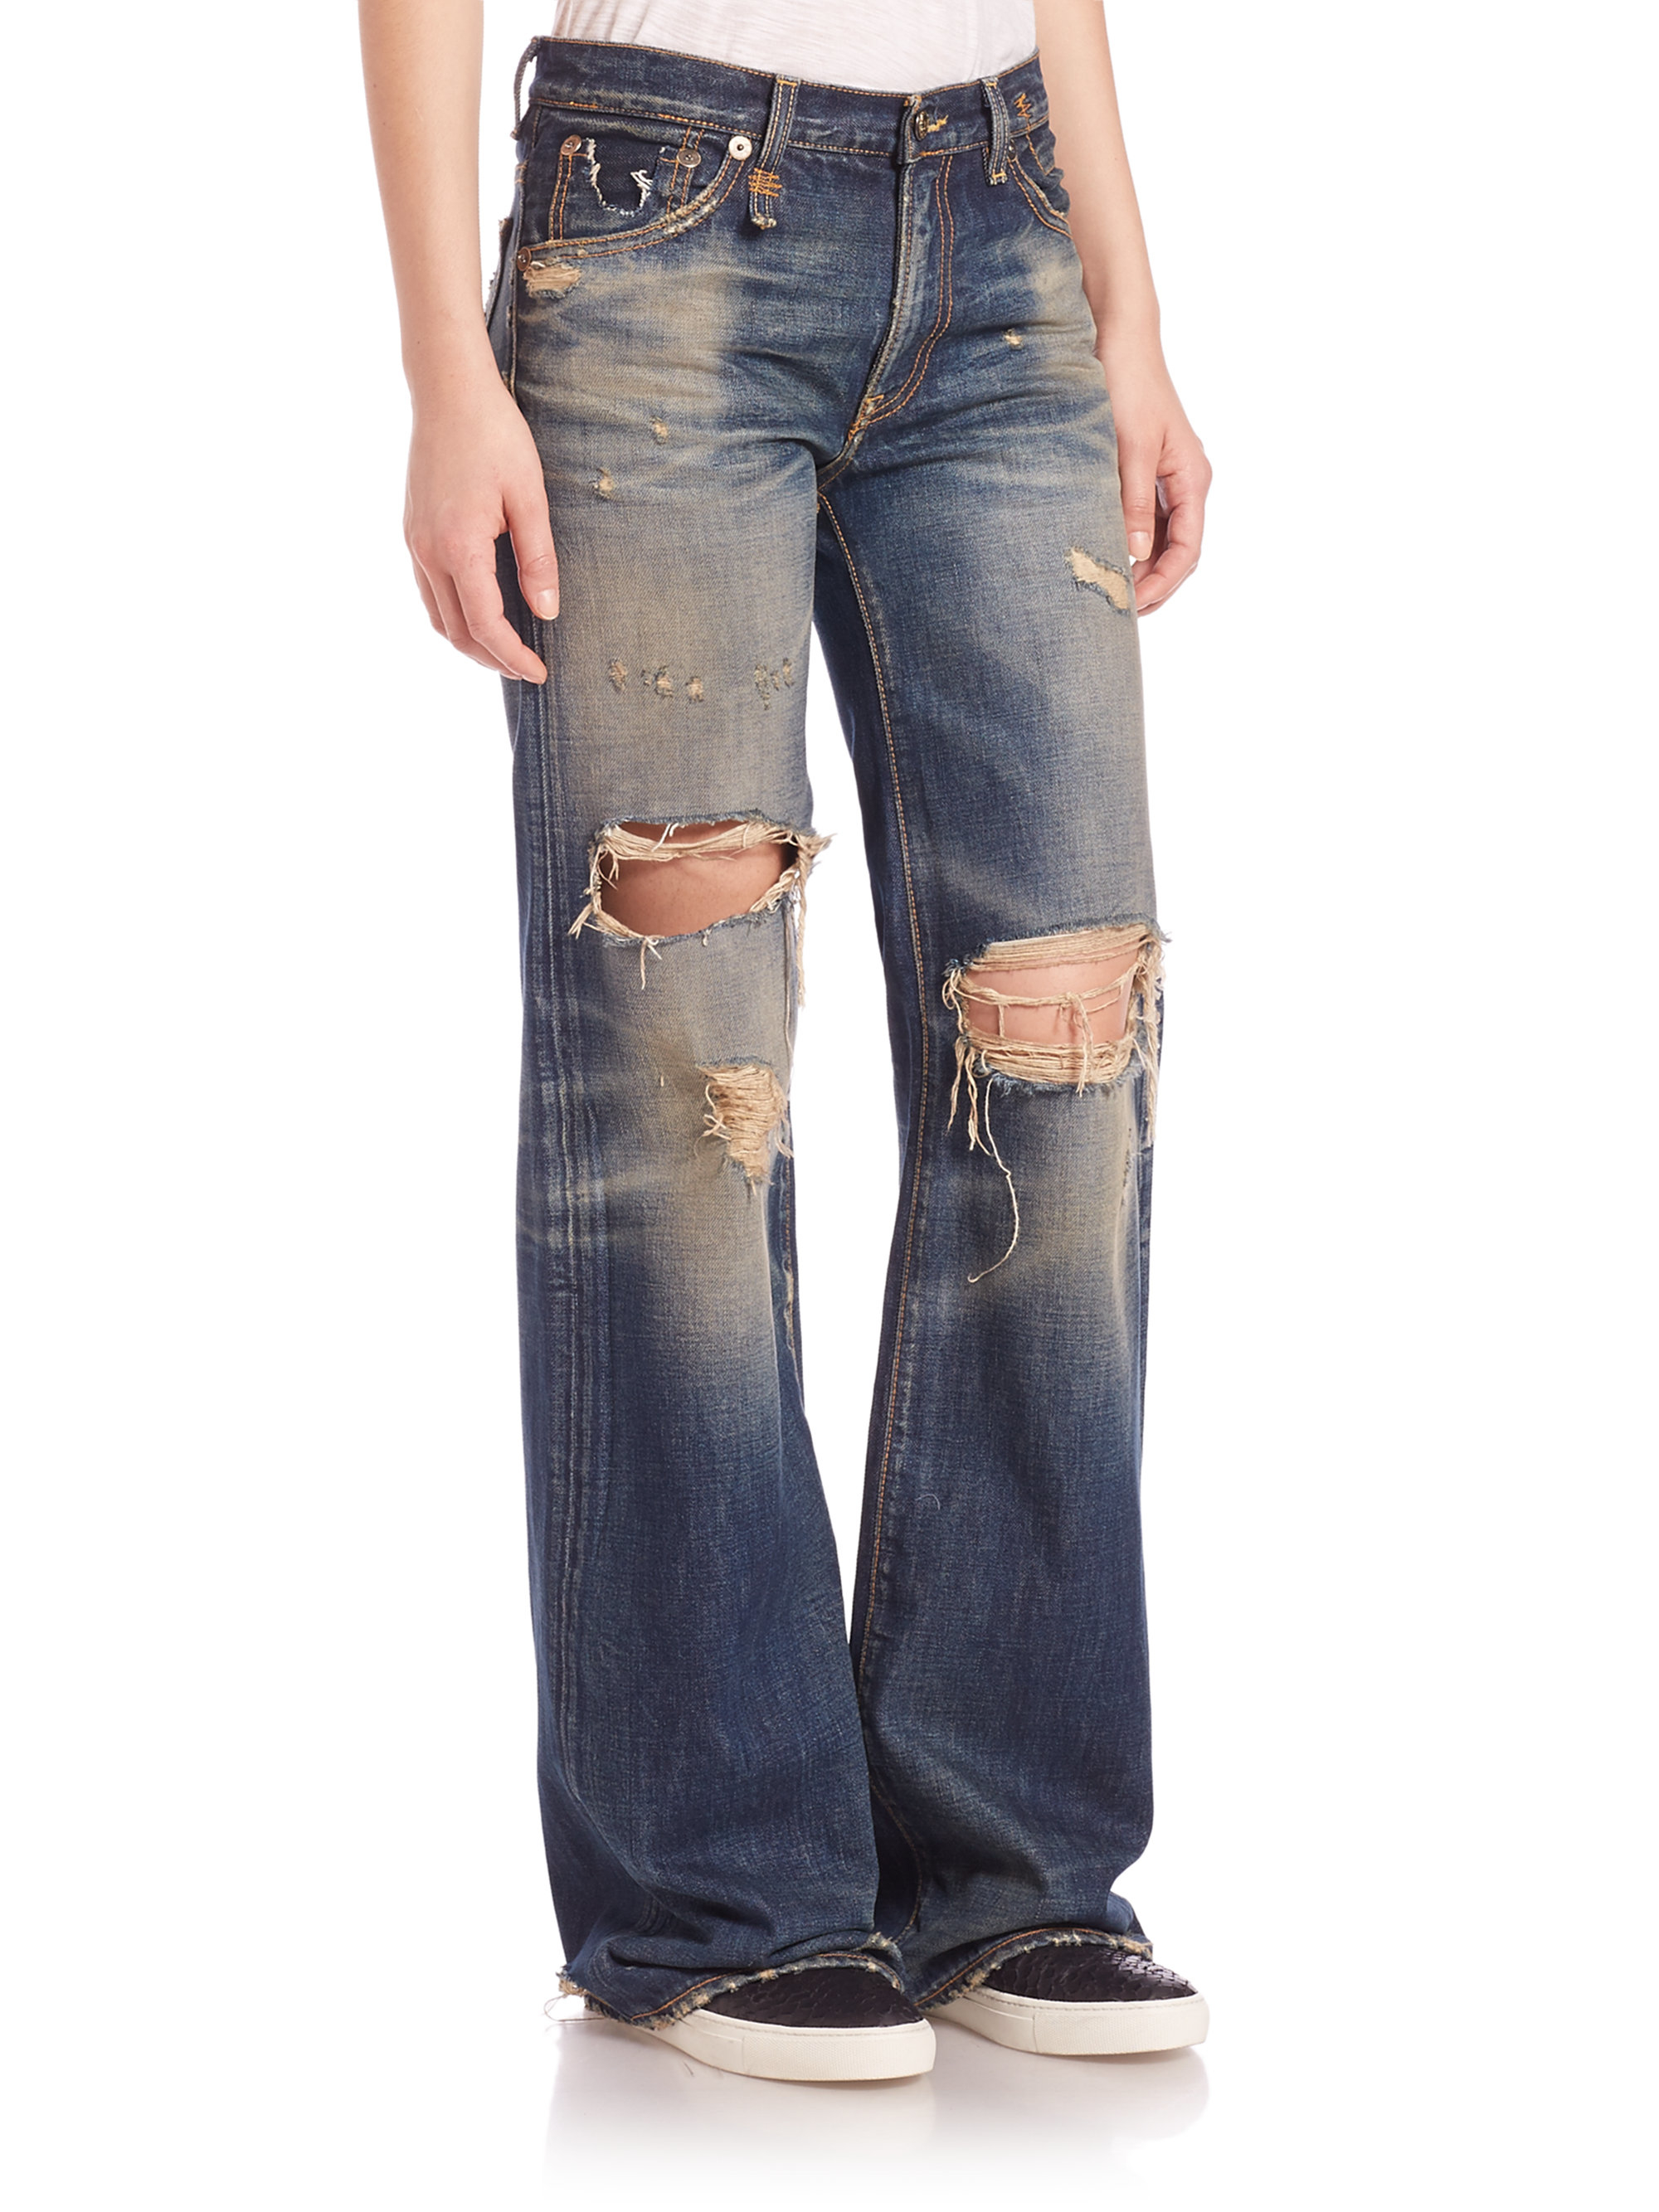 distressed wide-leg cropped jeans - Blue R13 Free Shipping Sale For Sale Online Outlet 2018 Cheap Sale Buy j4lLSx2